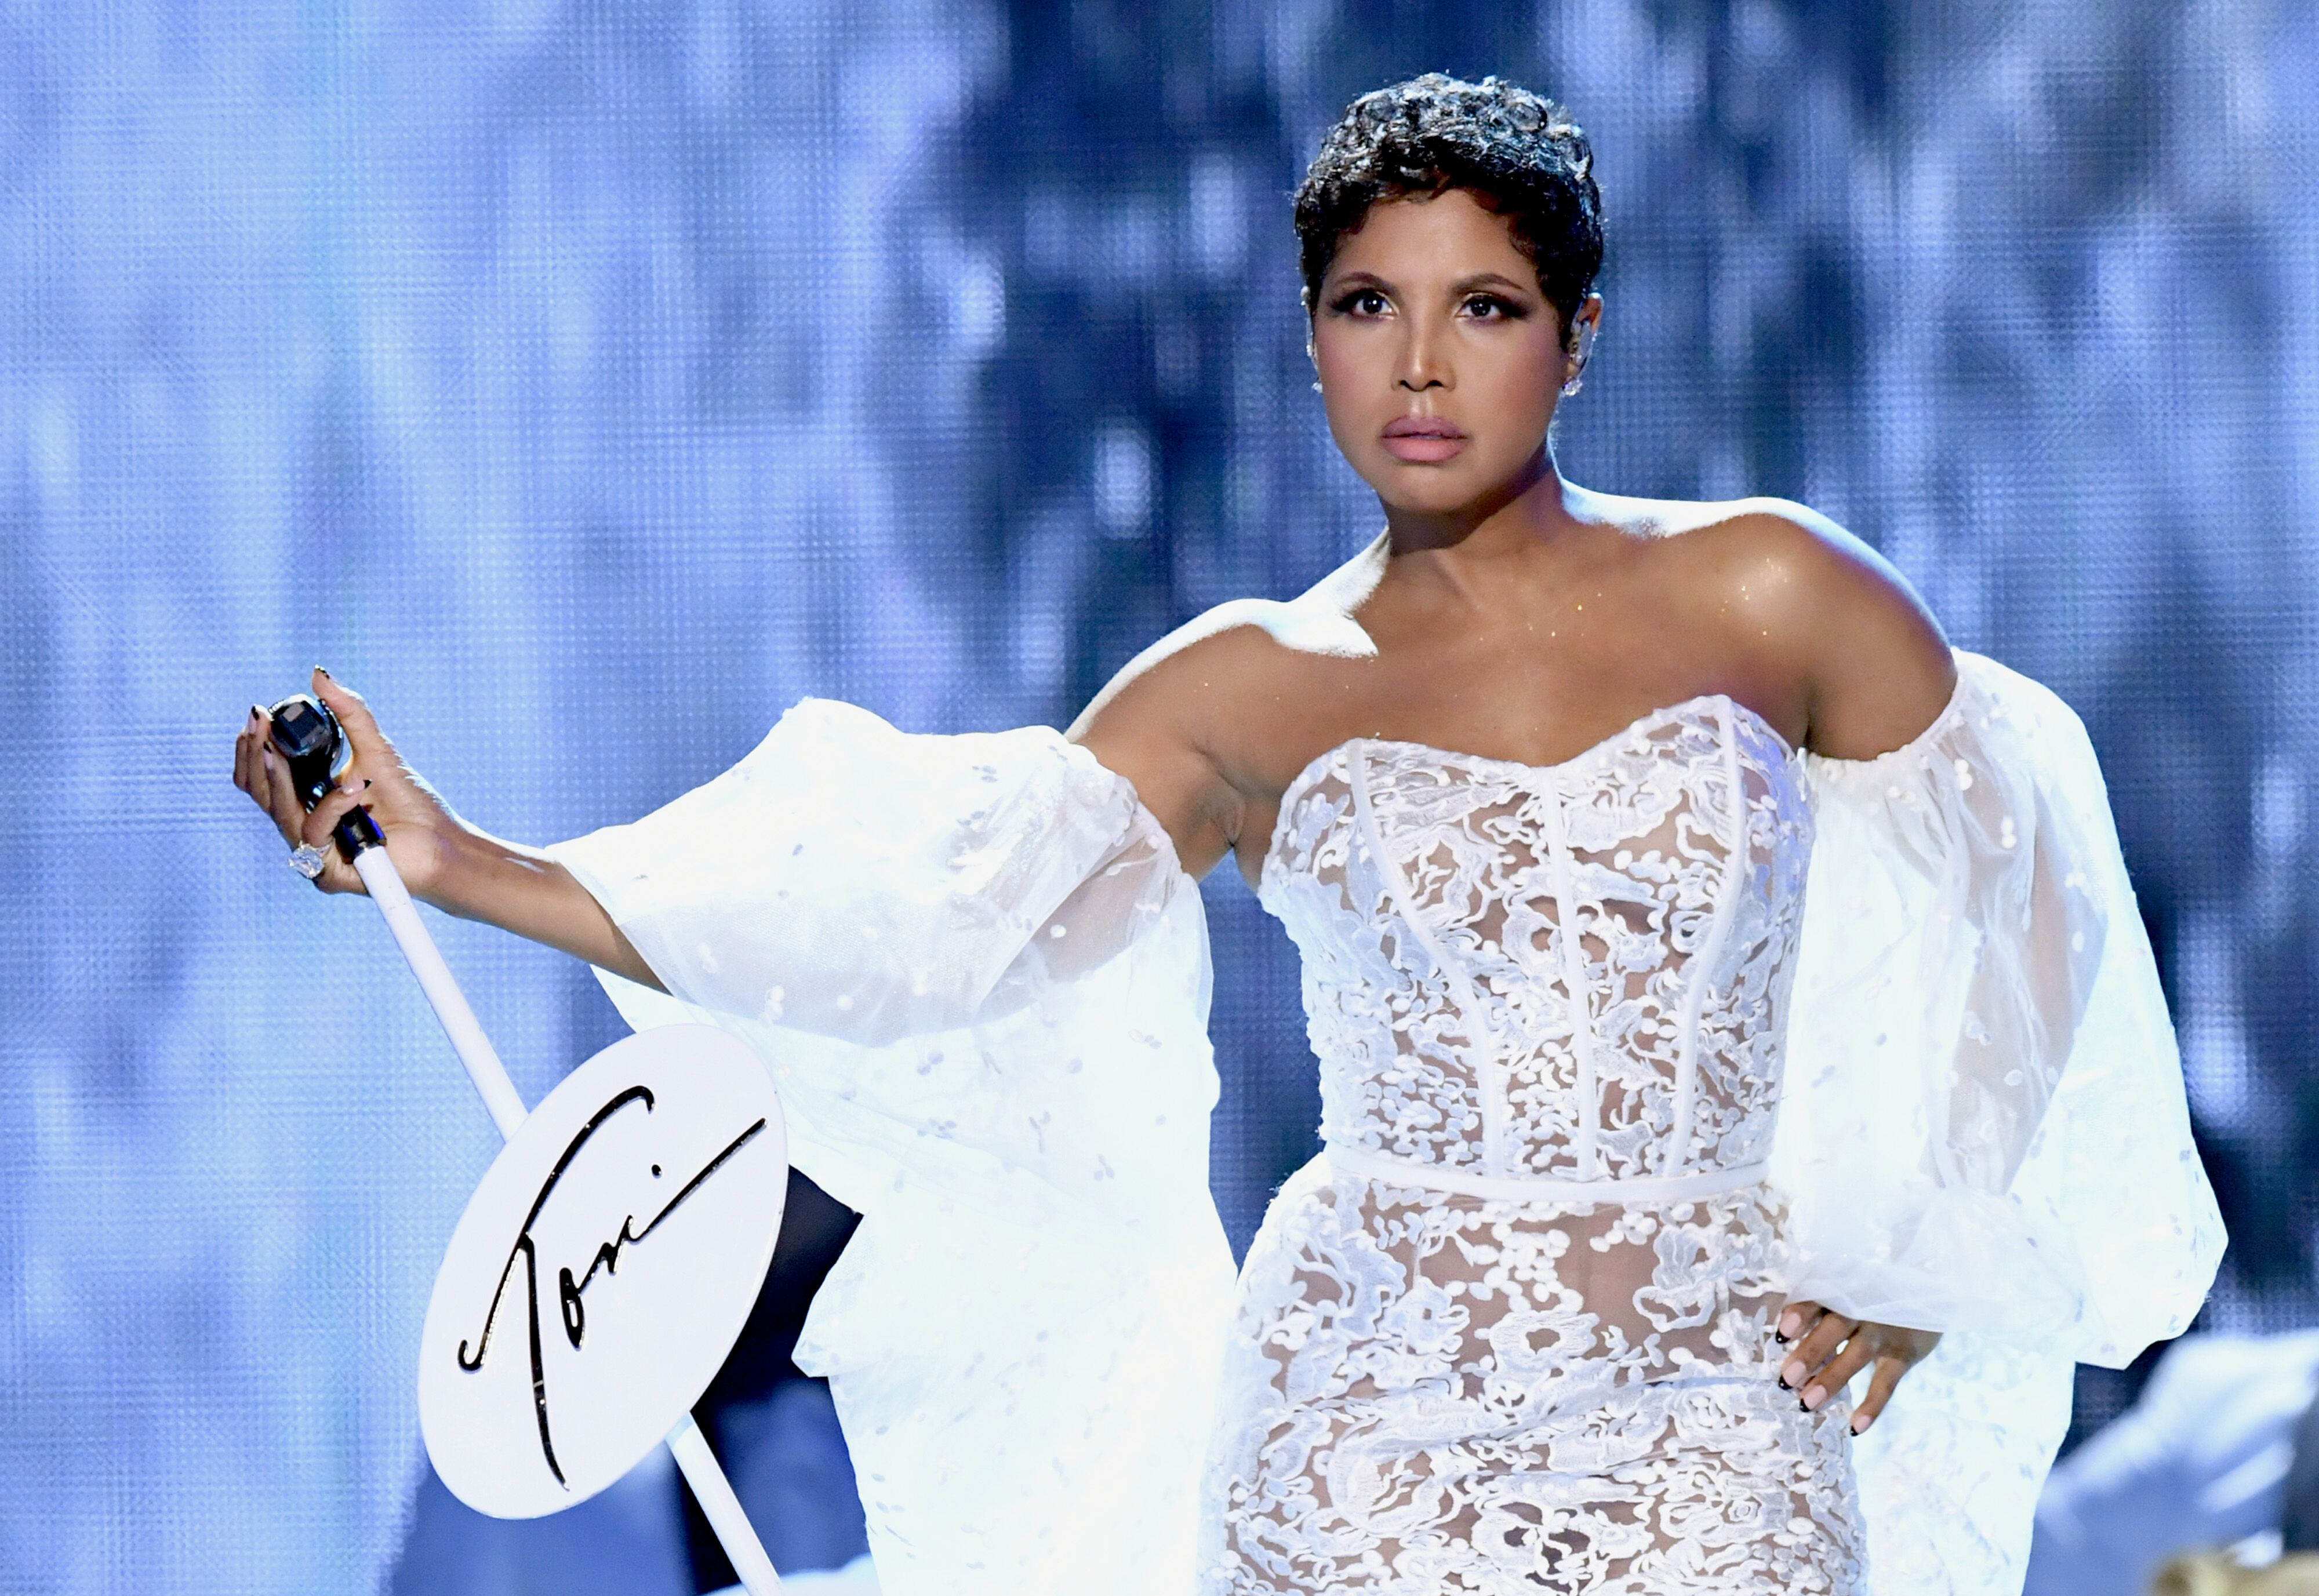 Toni Braxton performs on-stage at a concert | Source: Getty Images/GlobalImagesUkraine